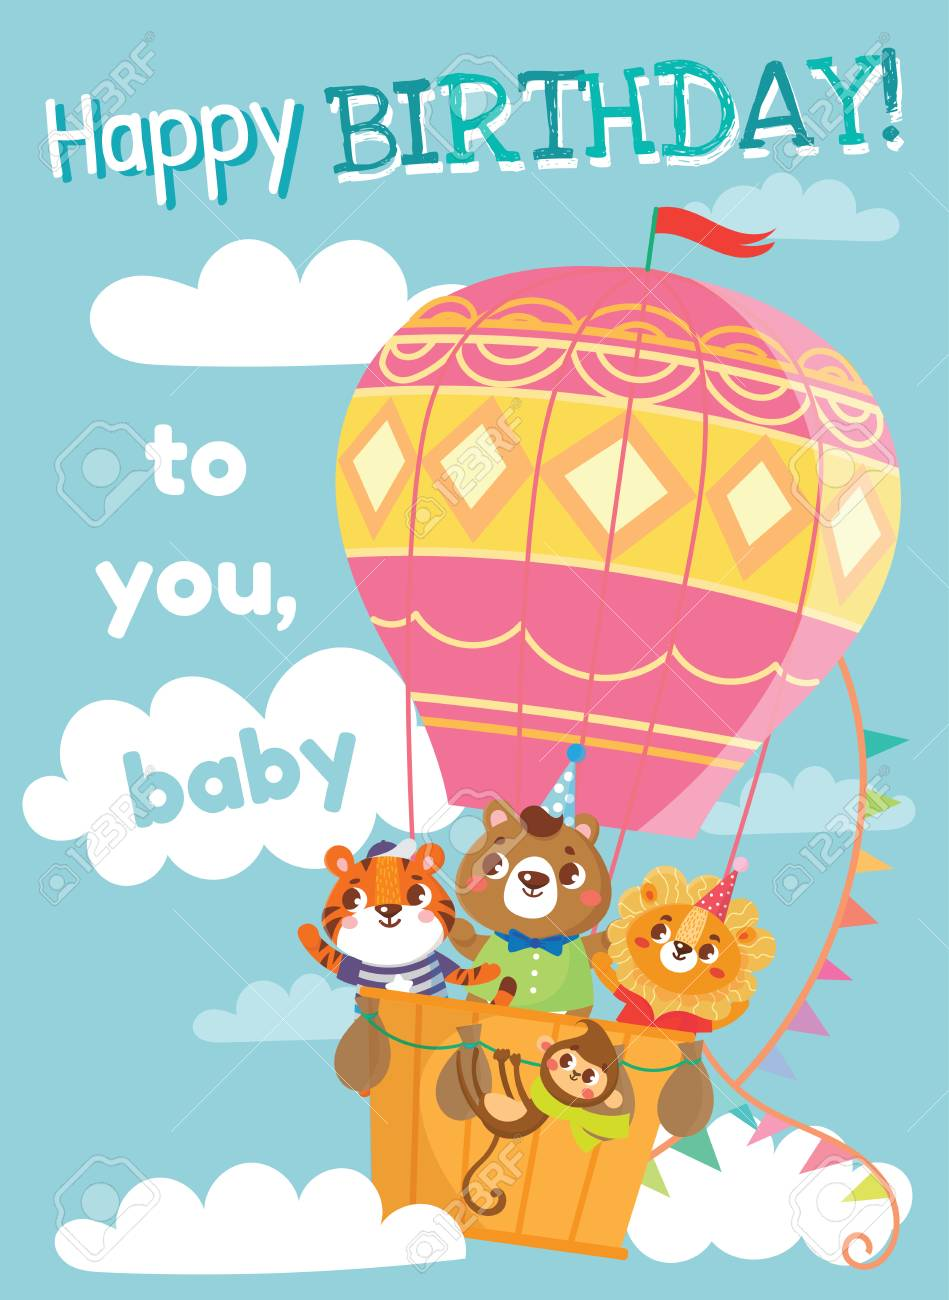 Birthday greeting cards with cute animals funny animals on hot birthday greeting cards with cute animals funny animals on hot air balloon vector illustration bookmarktalkfo